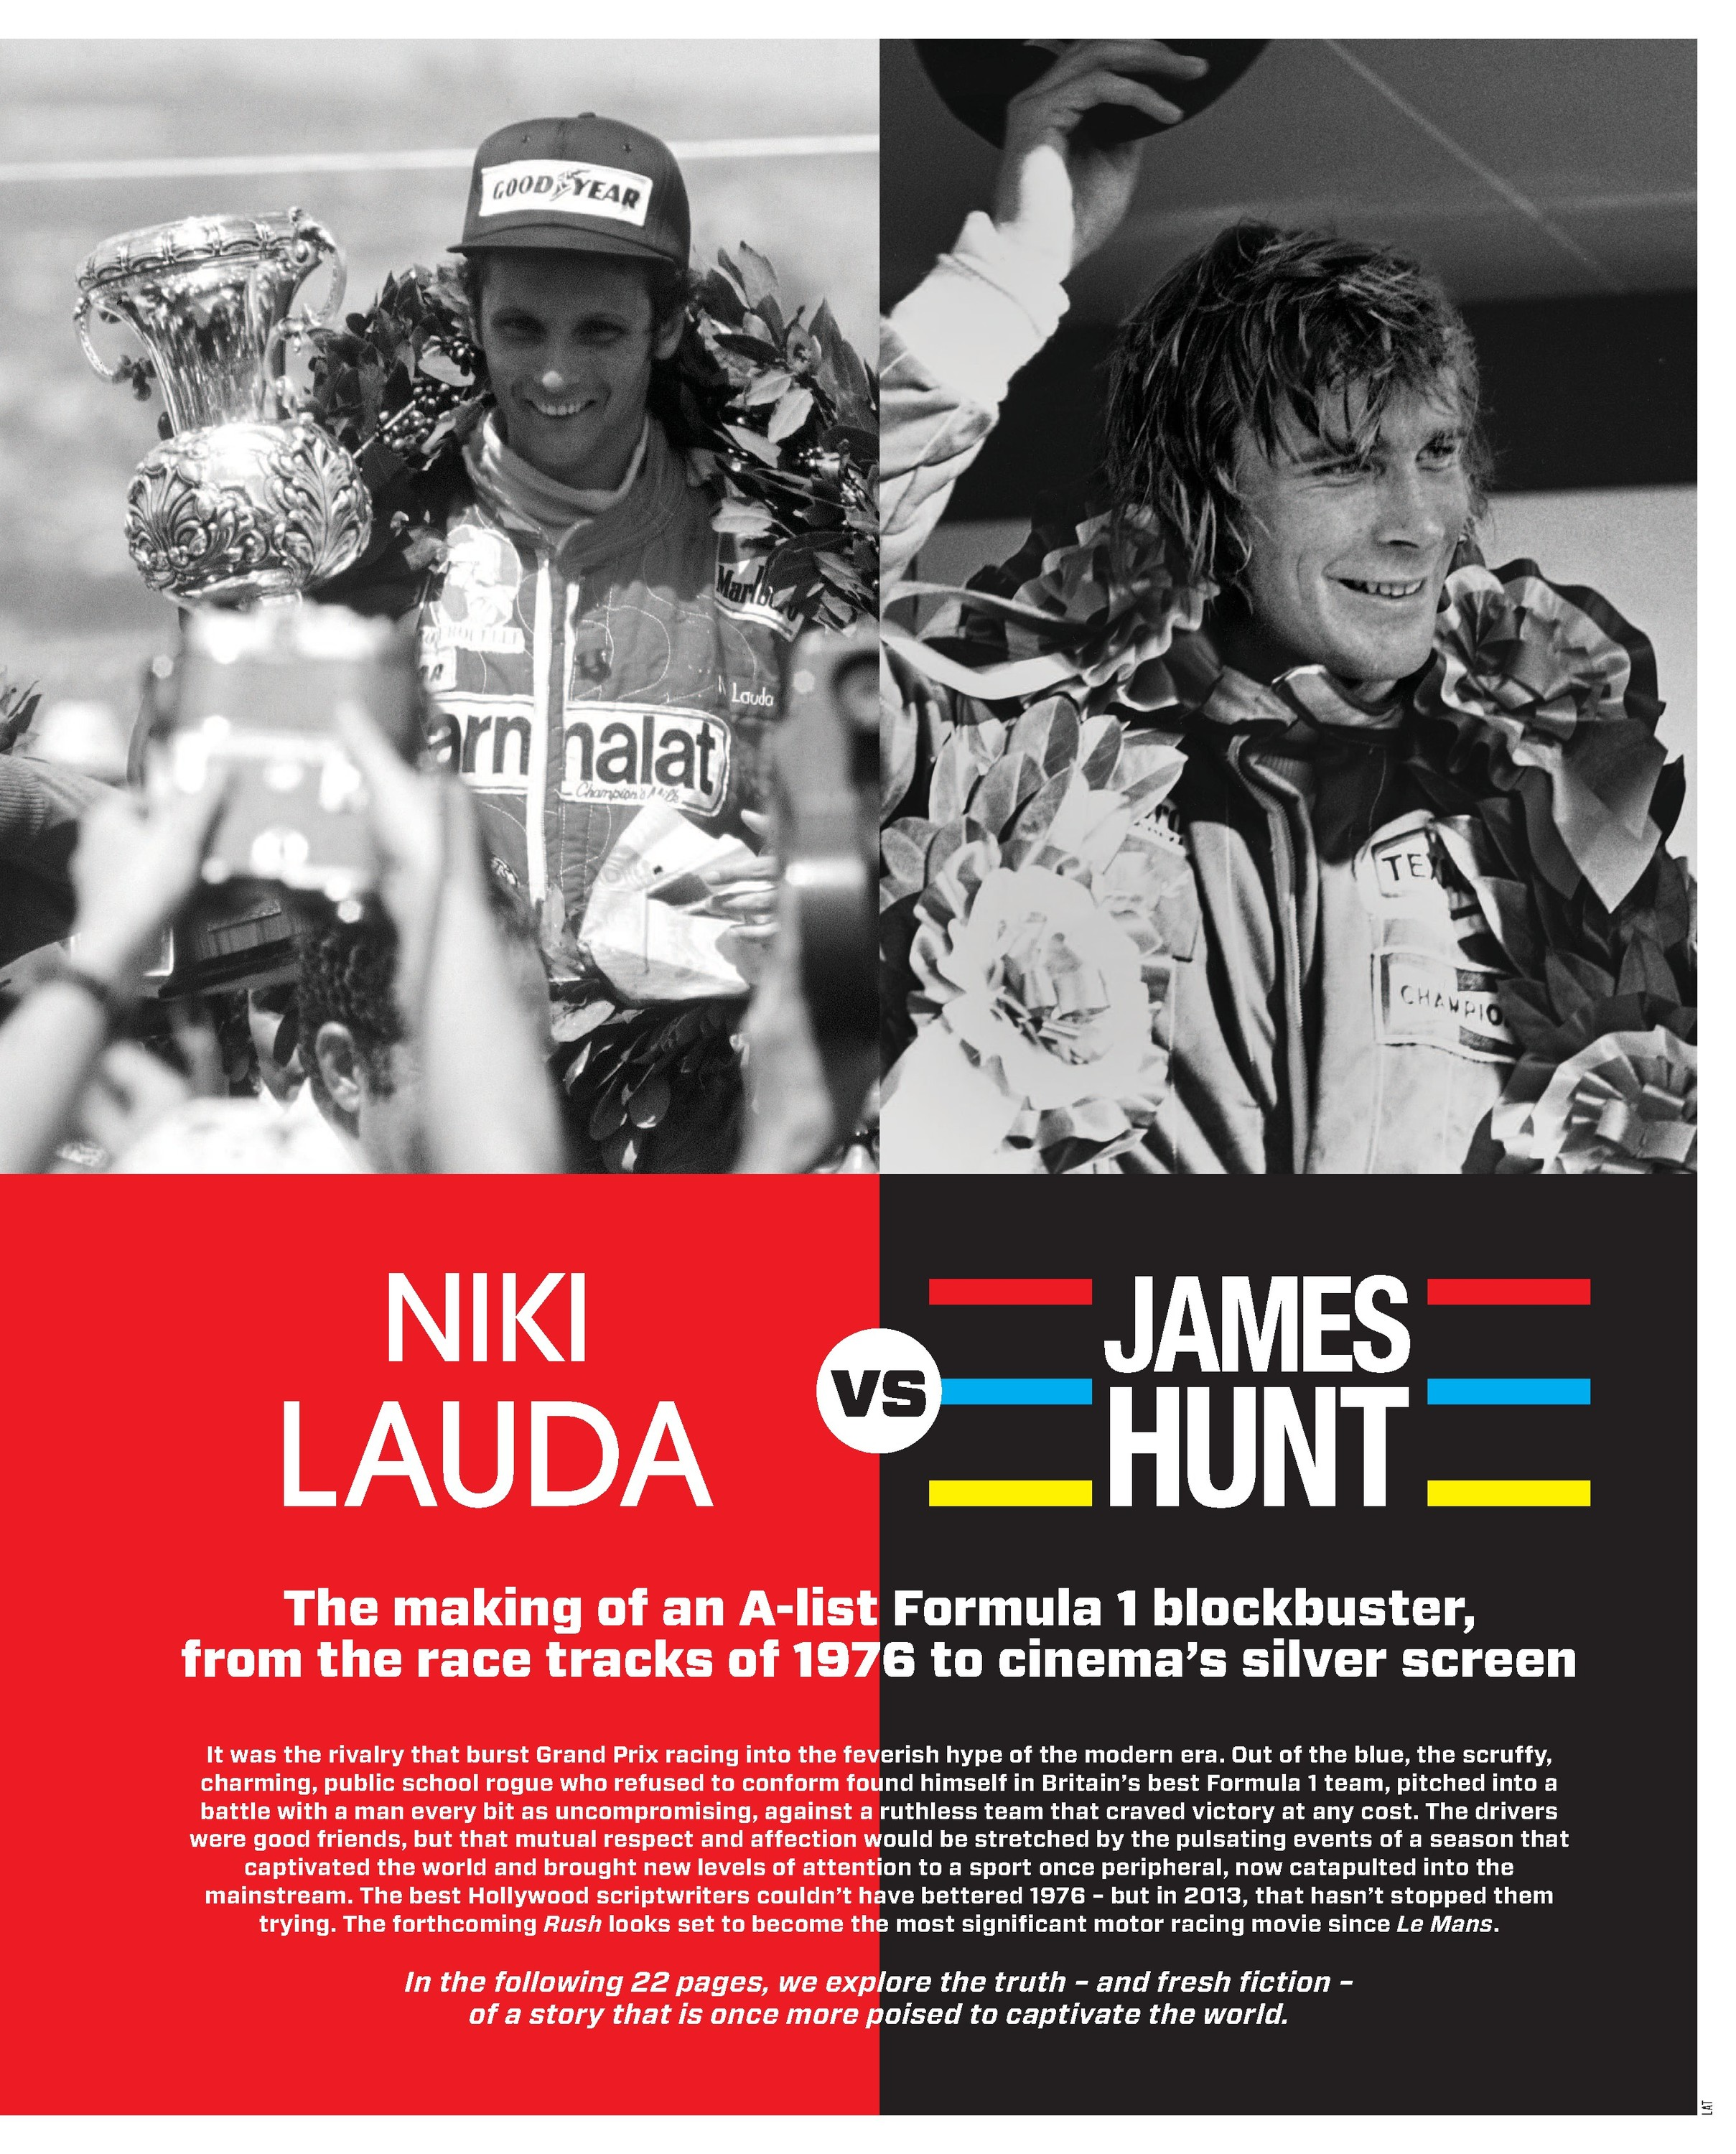 Niki Lauda vs James Hunt image